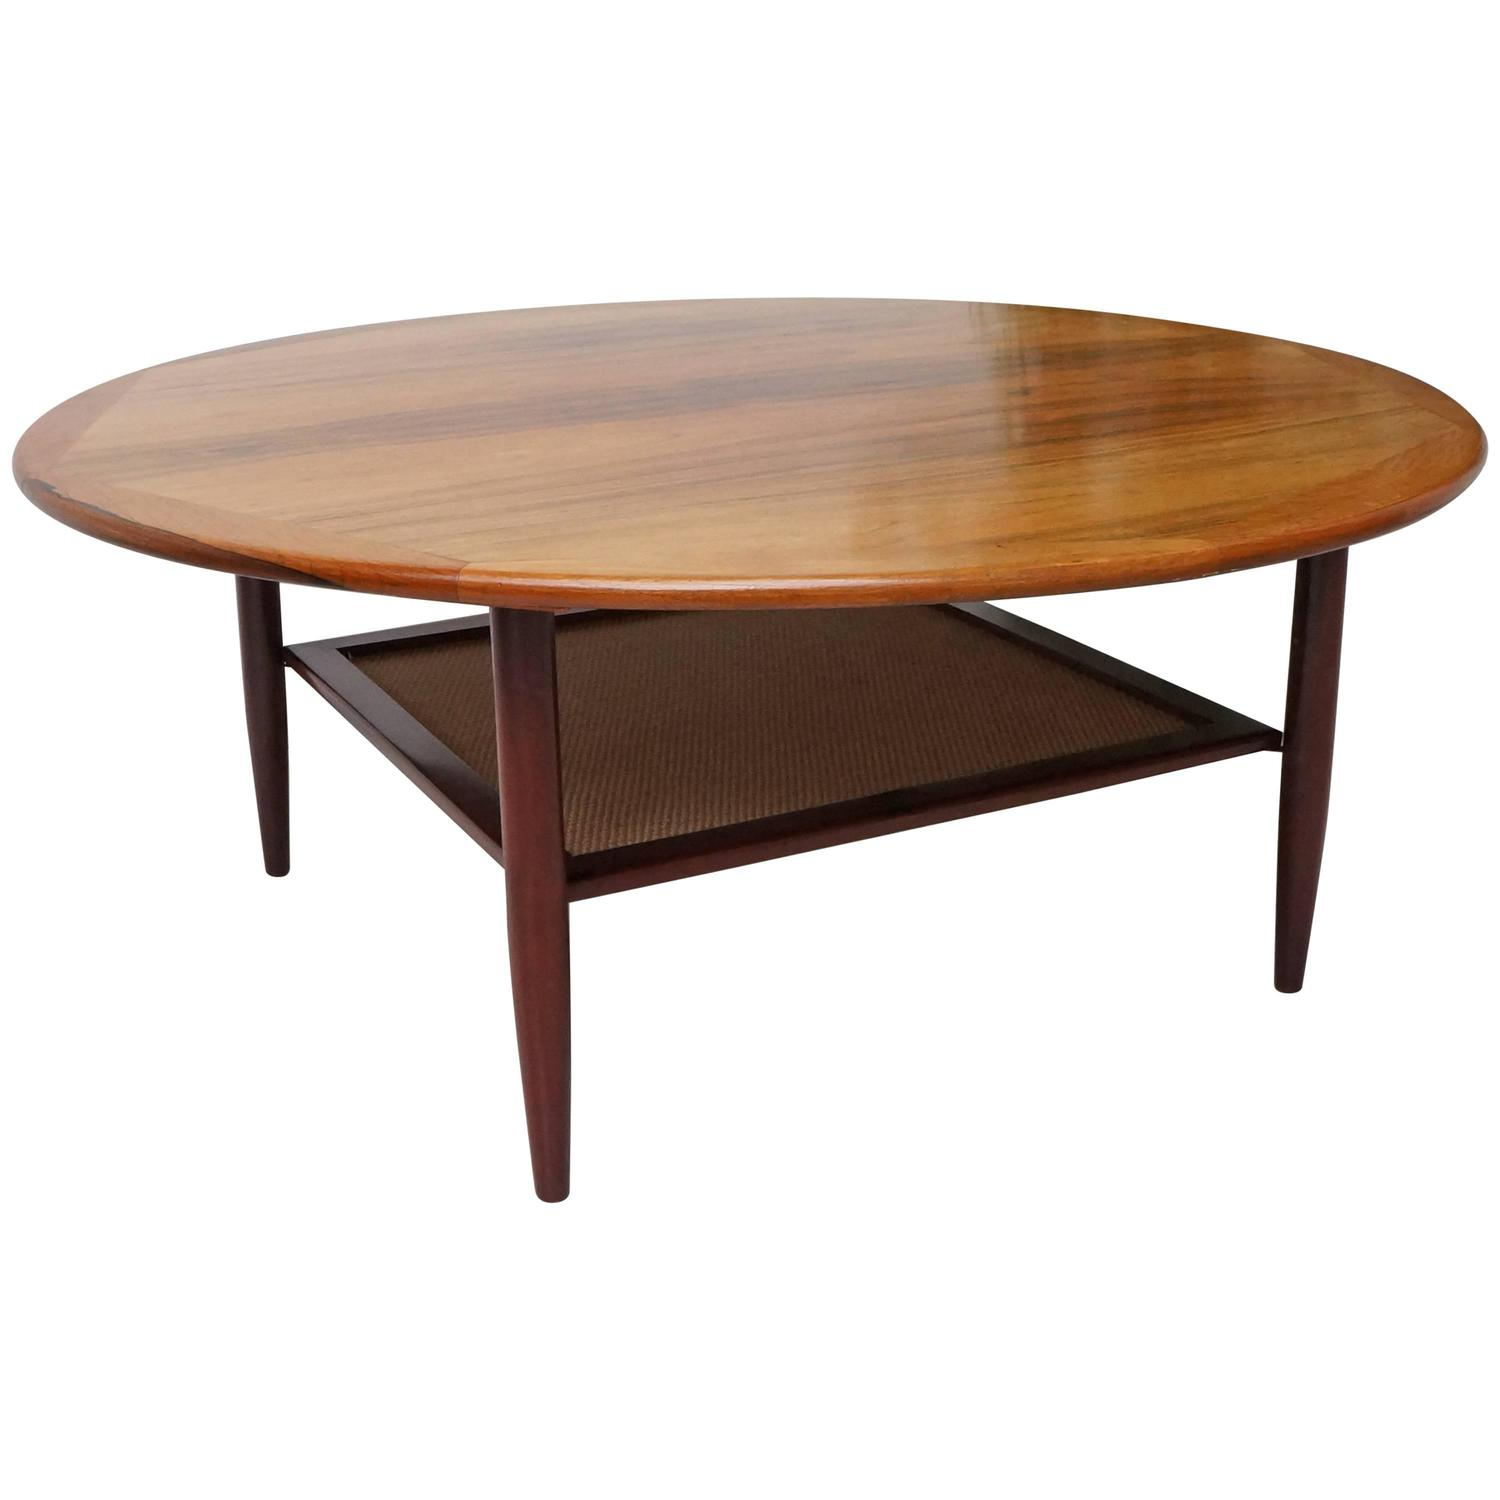 Large round wooden coffee table 1960s at 1stdibs for K furniture coffee table